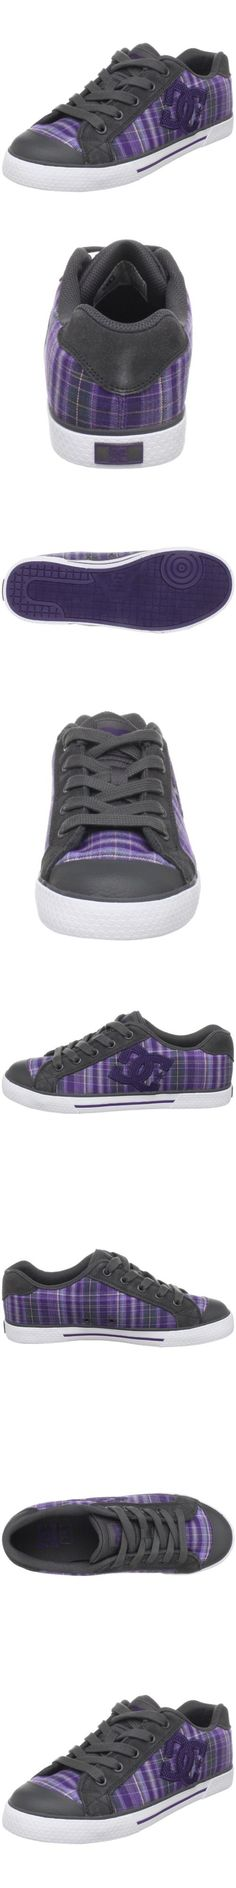 11 Best shoes images | Shoes, Sneakers, Sneakers fashion